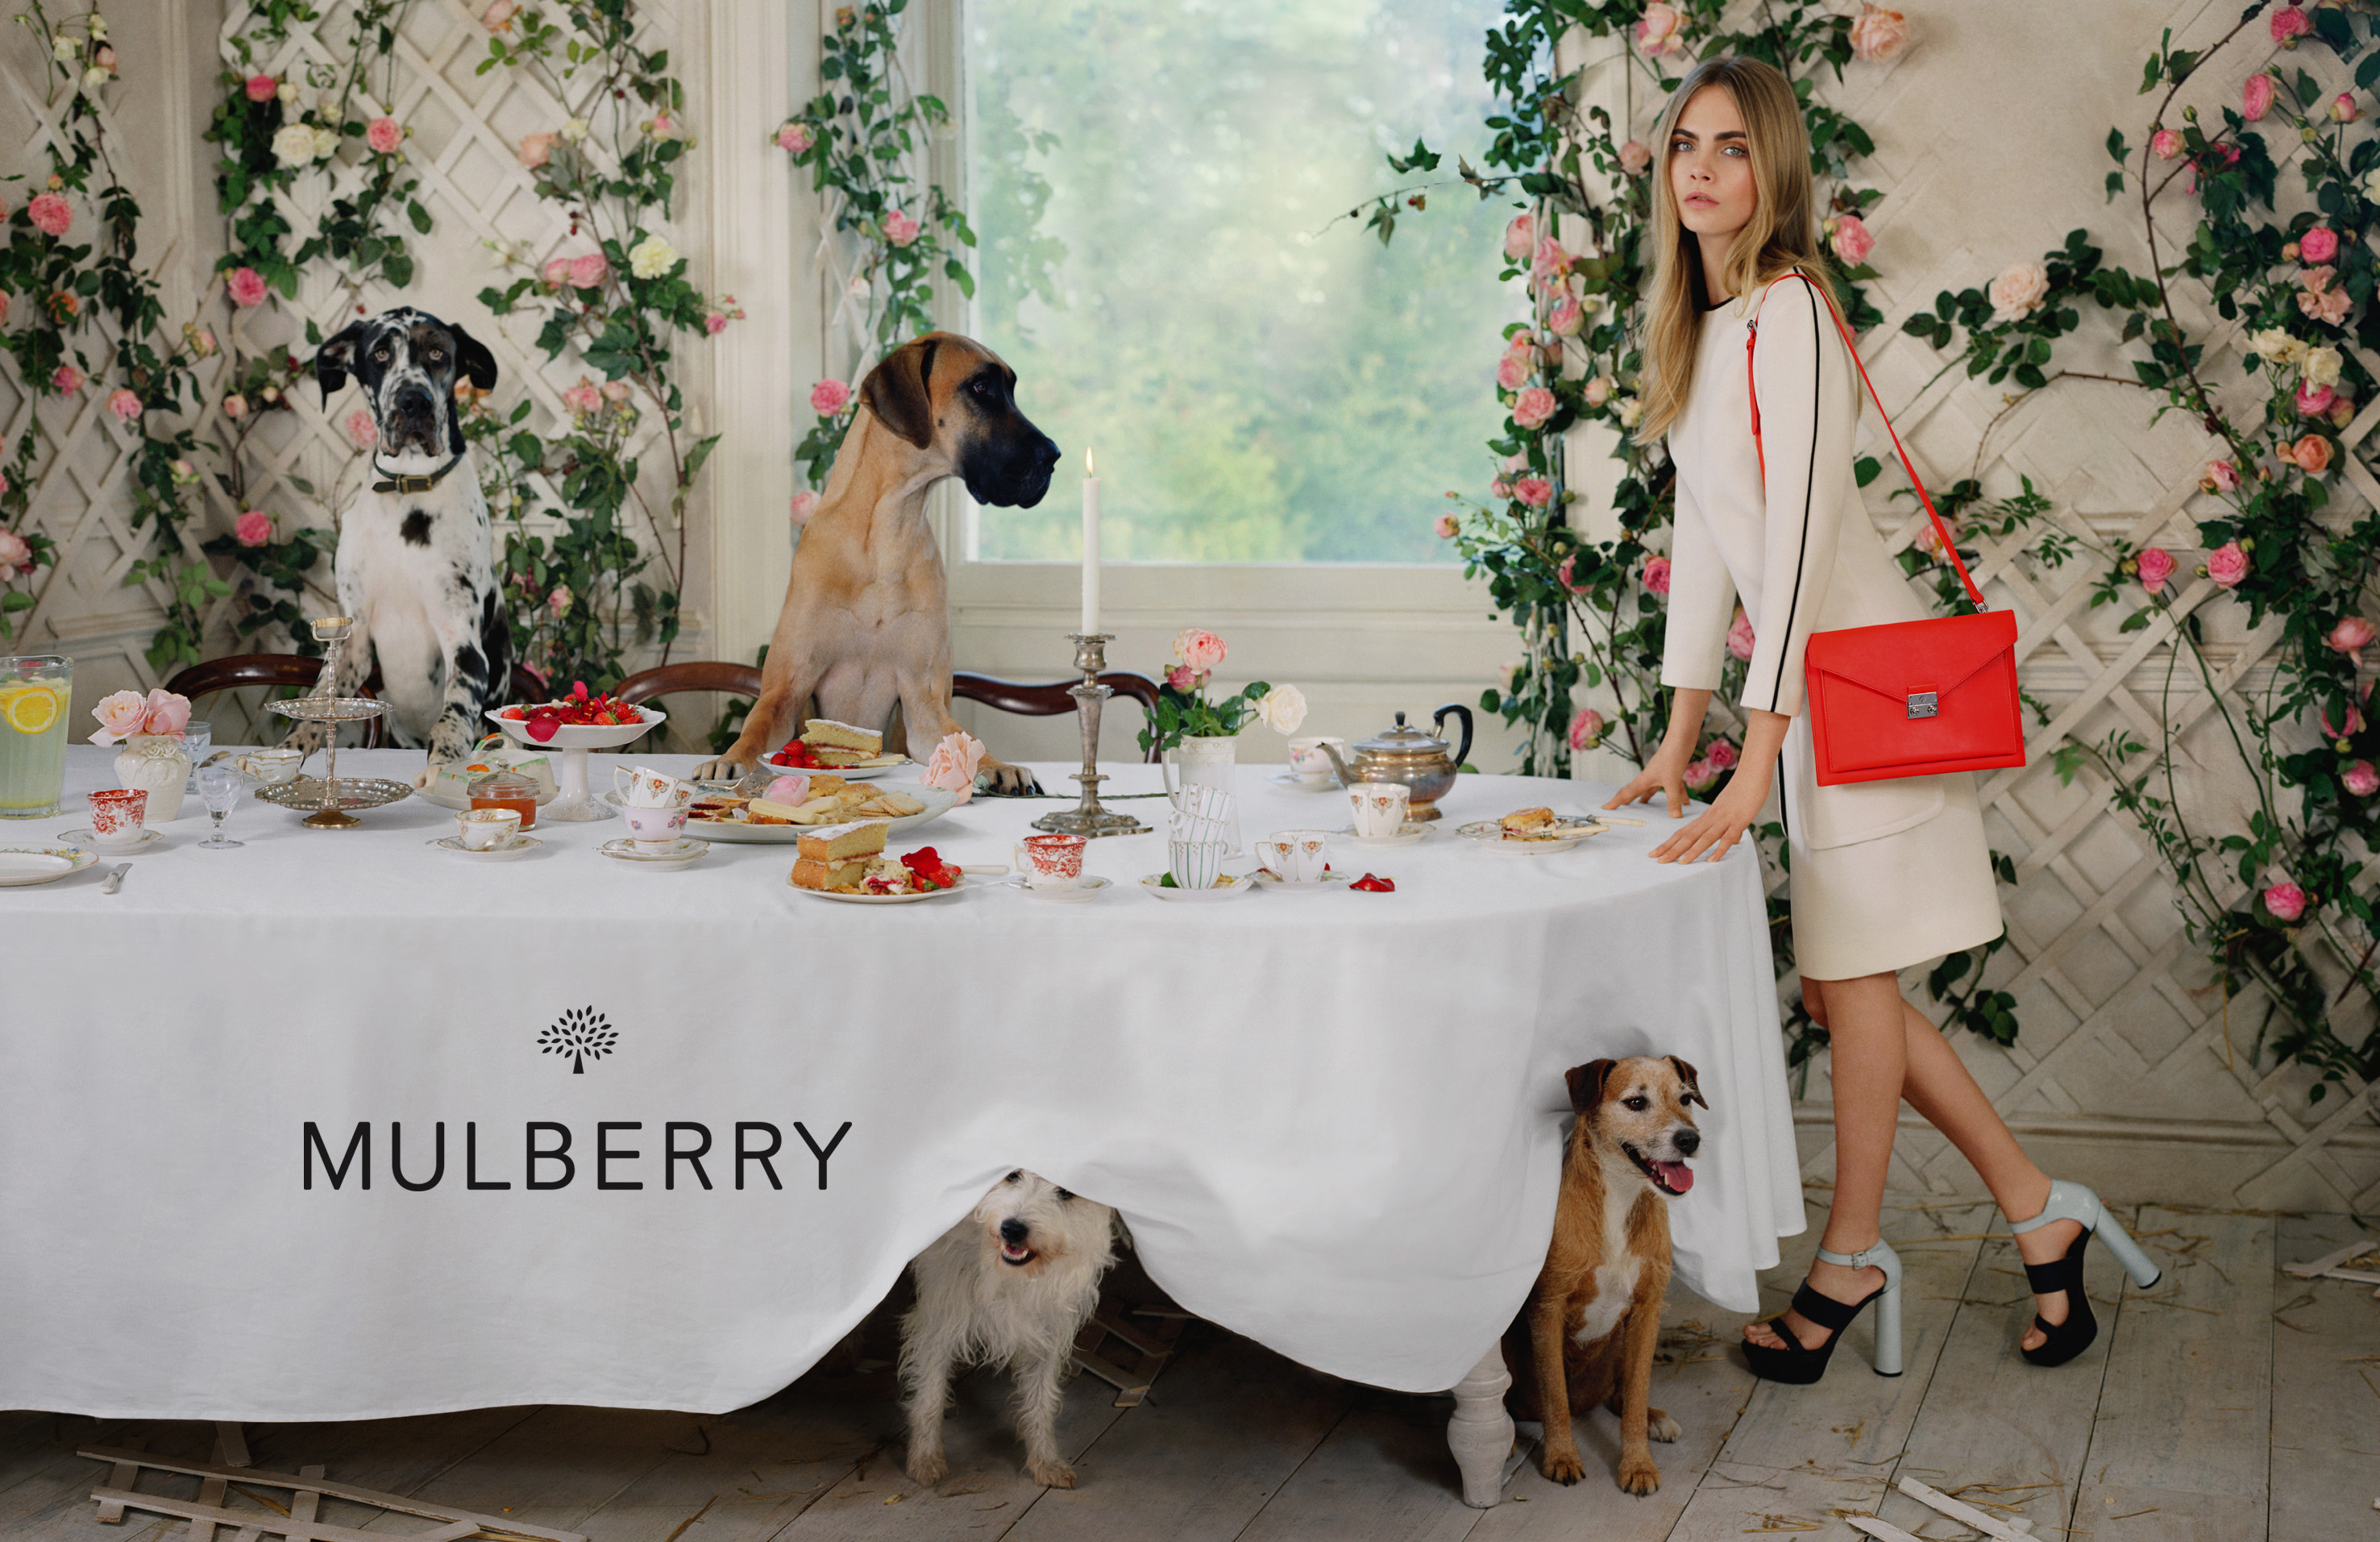 Mulberry SS14, Mulberry spring summer, Cara Delevingne Mulberry ss14, ad campaigns